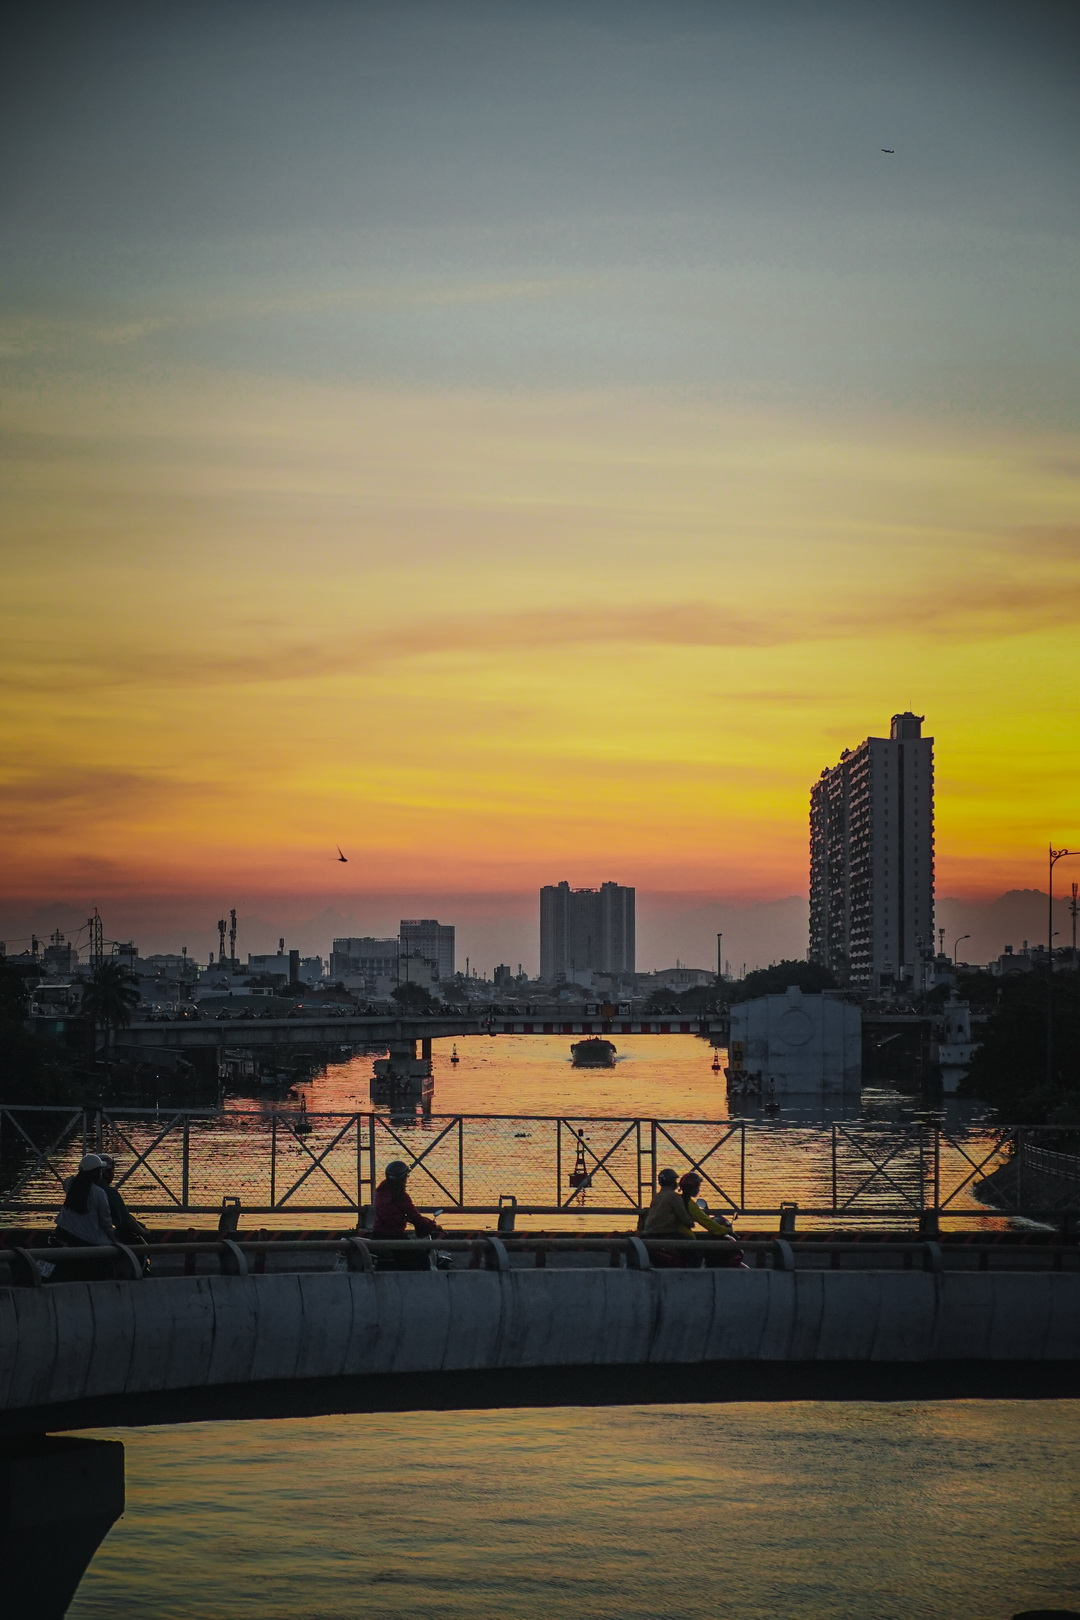 Saigon in sunset. Photo: @odaucungchup